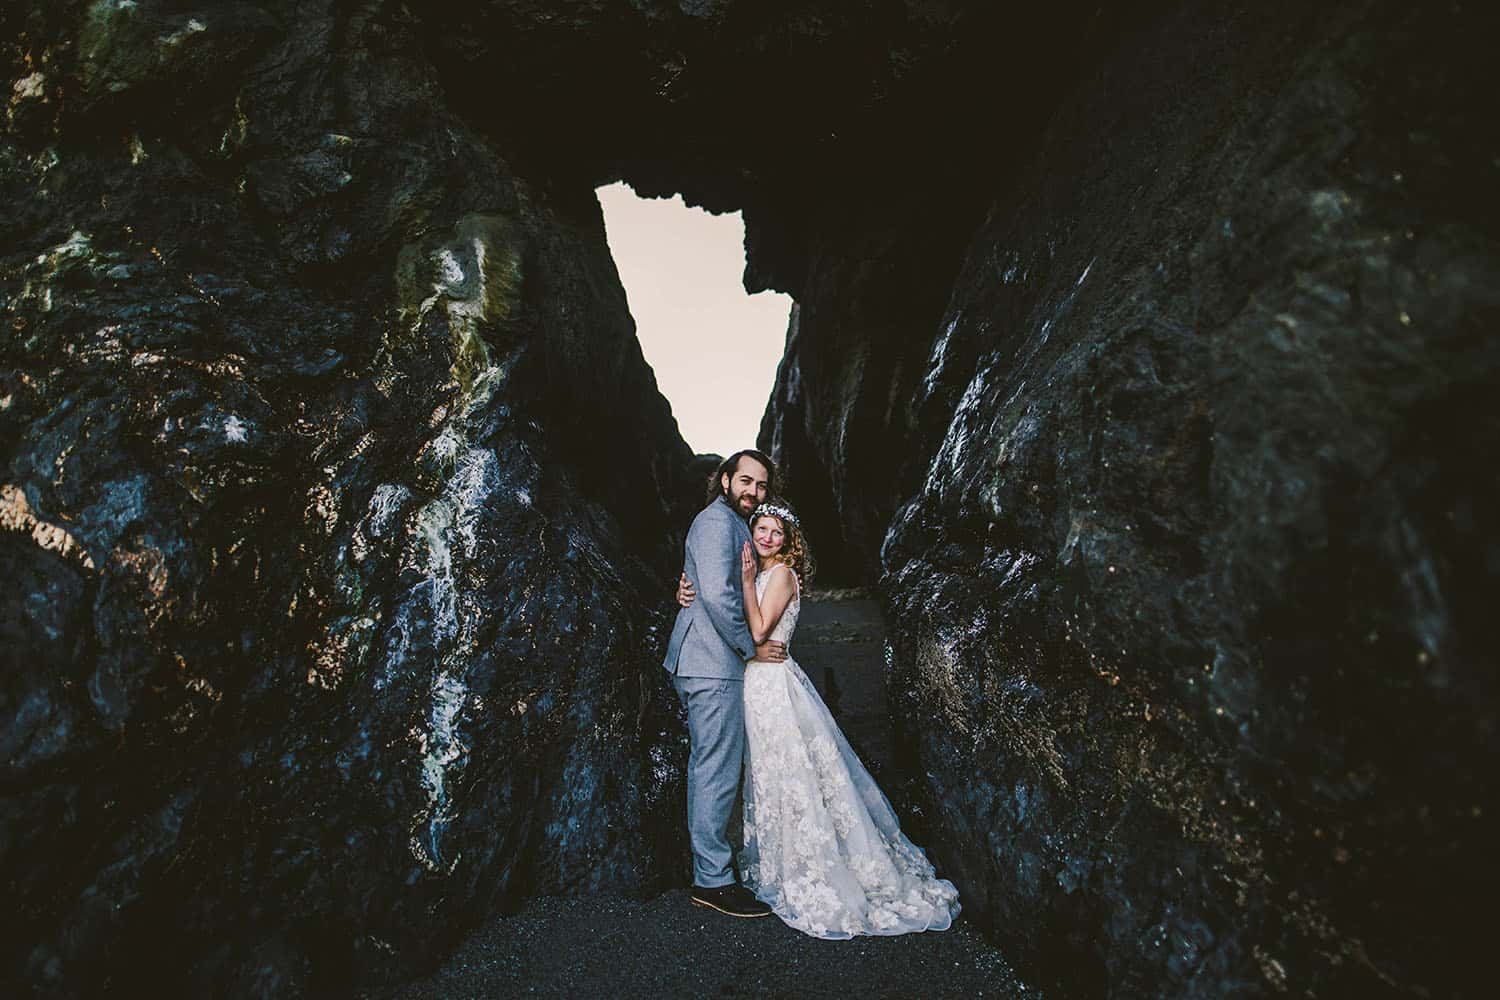 Color full-length portrait of a caucasion bride and groom embracing at the entrace to a sea cave. The groom has a brown beard and is wearing a gray suit, and the bride is wearing a flower crown over her blonde curls.